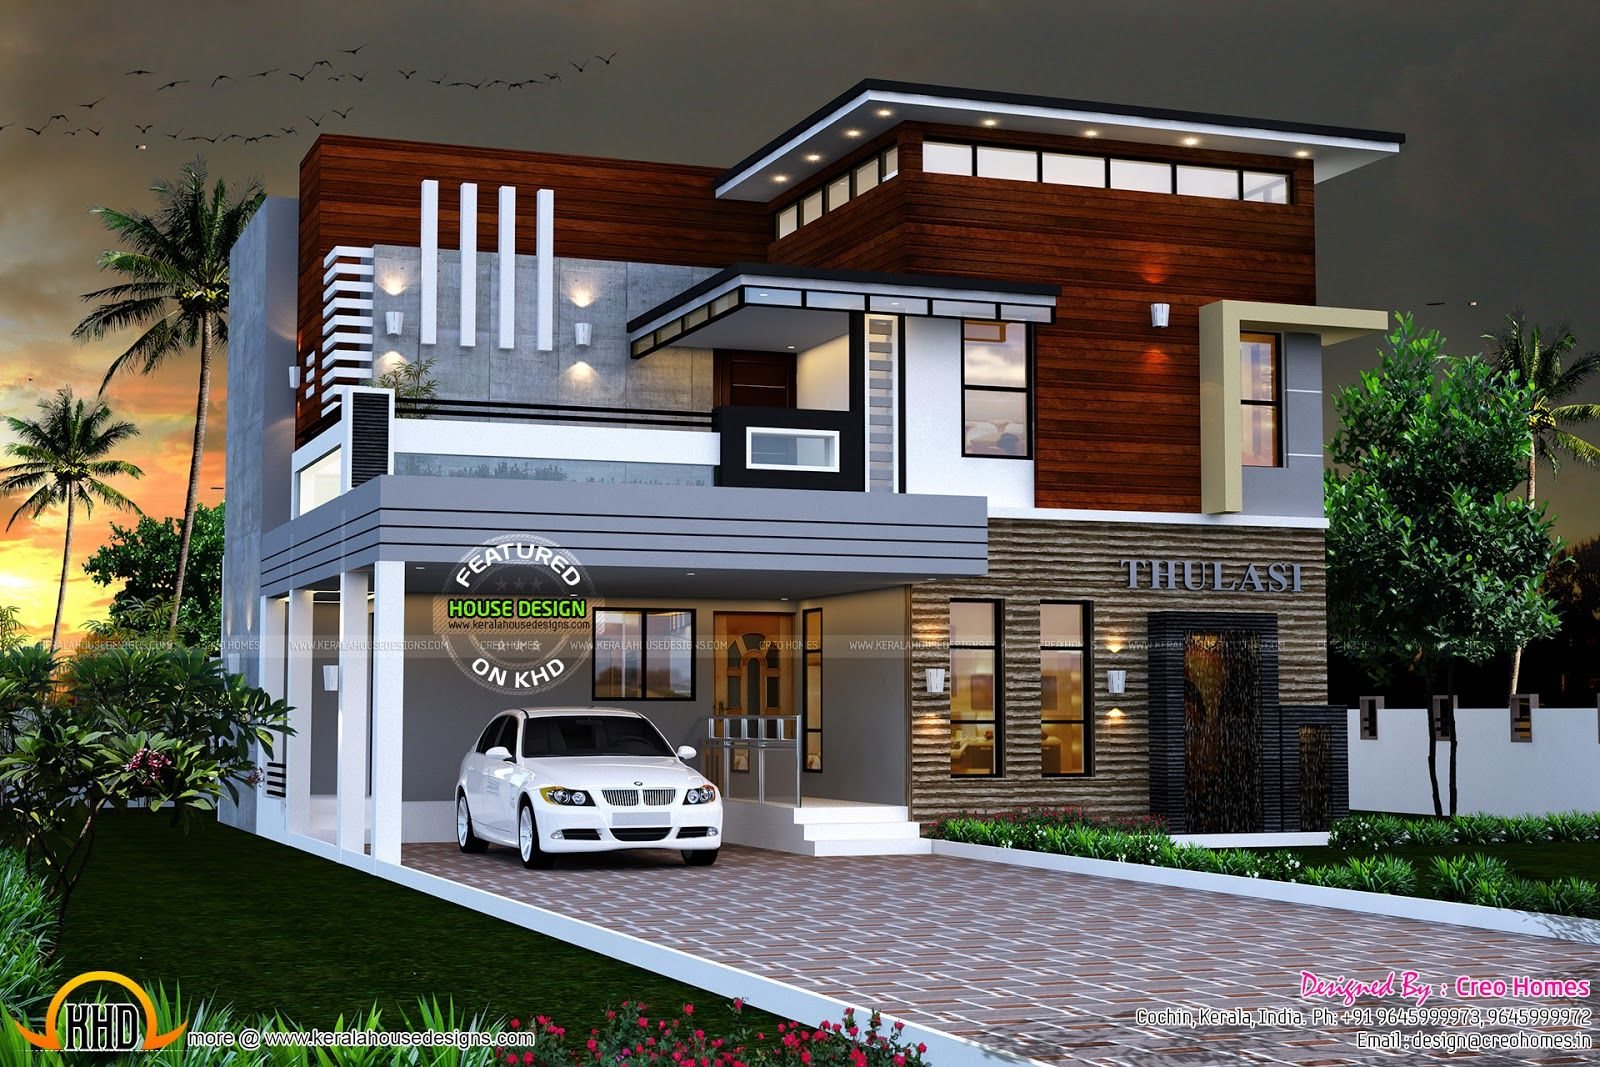 Eterior design modern small house architecture building for Kerala house interior arch design